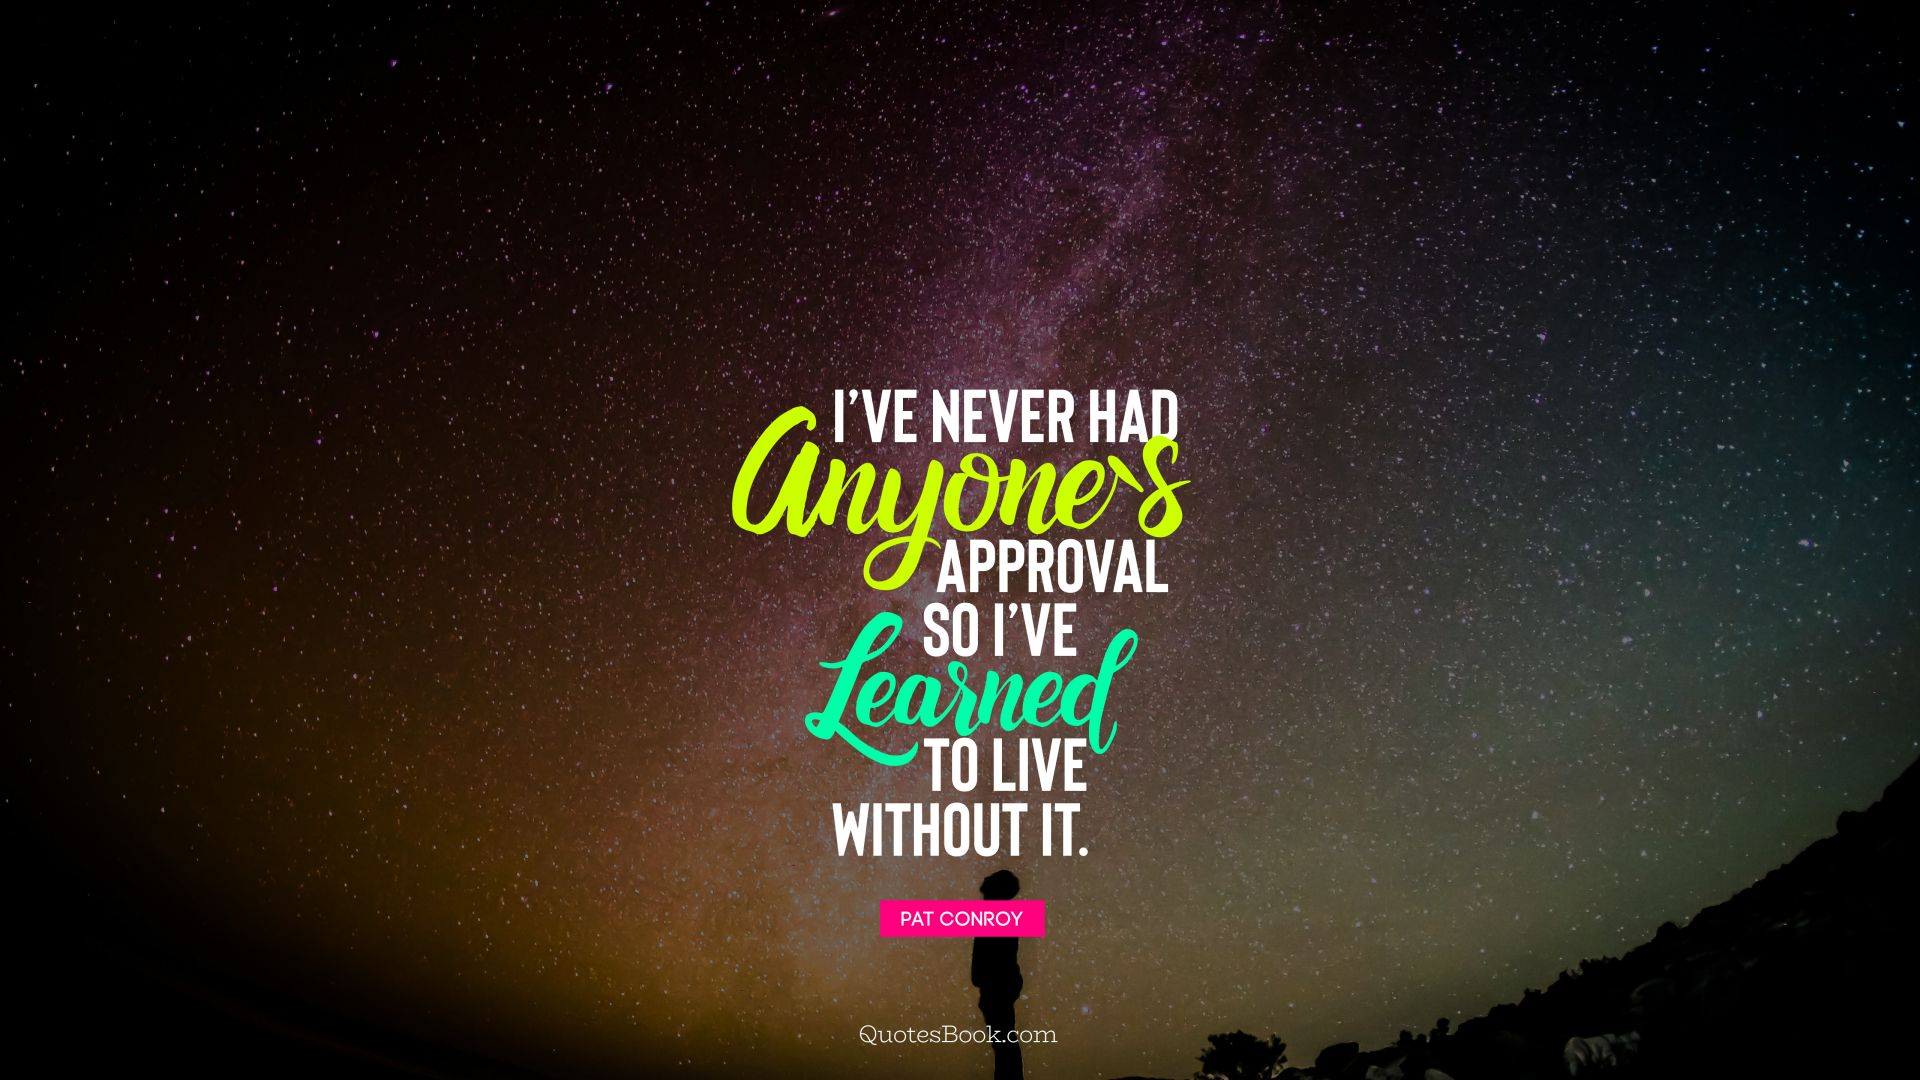 I've never had anyone's approval, so I've learned to live without it. - Quote by Pat Conroy